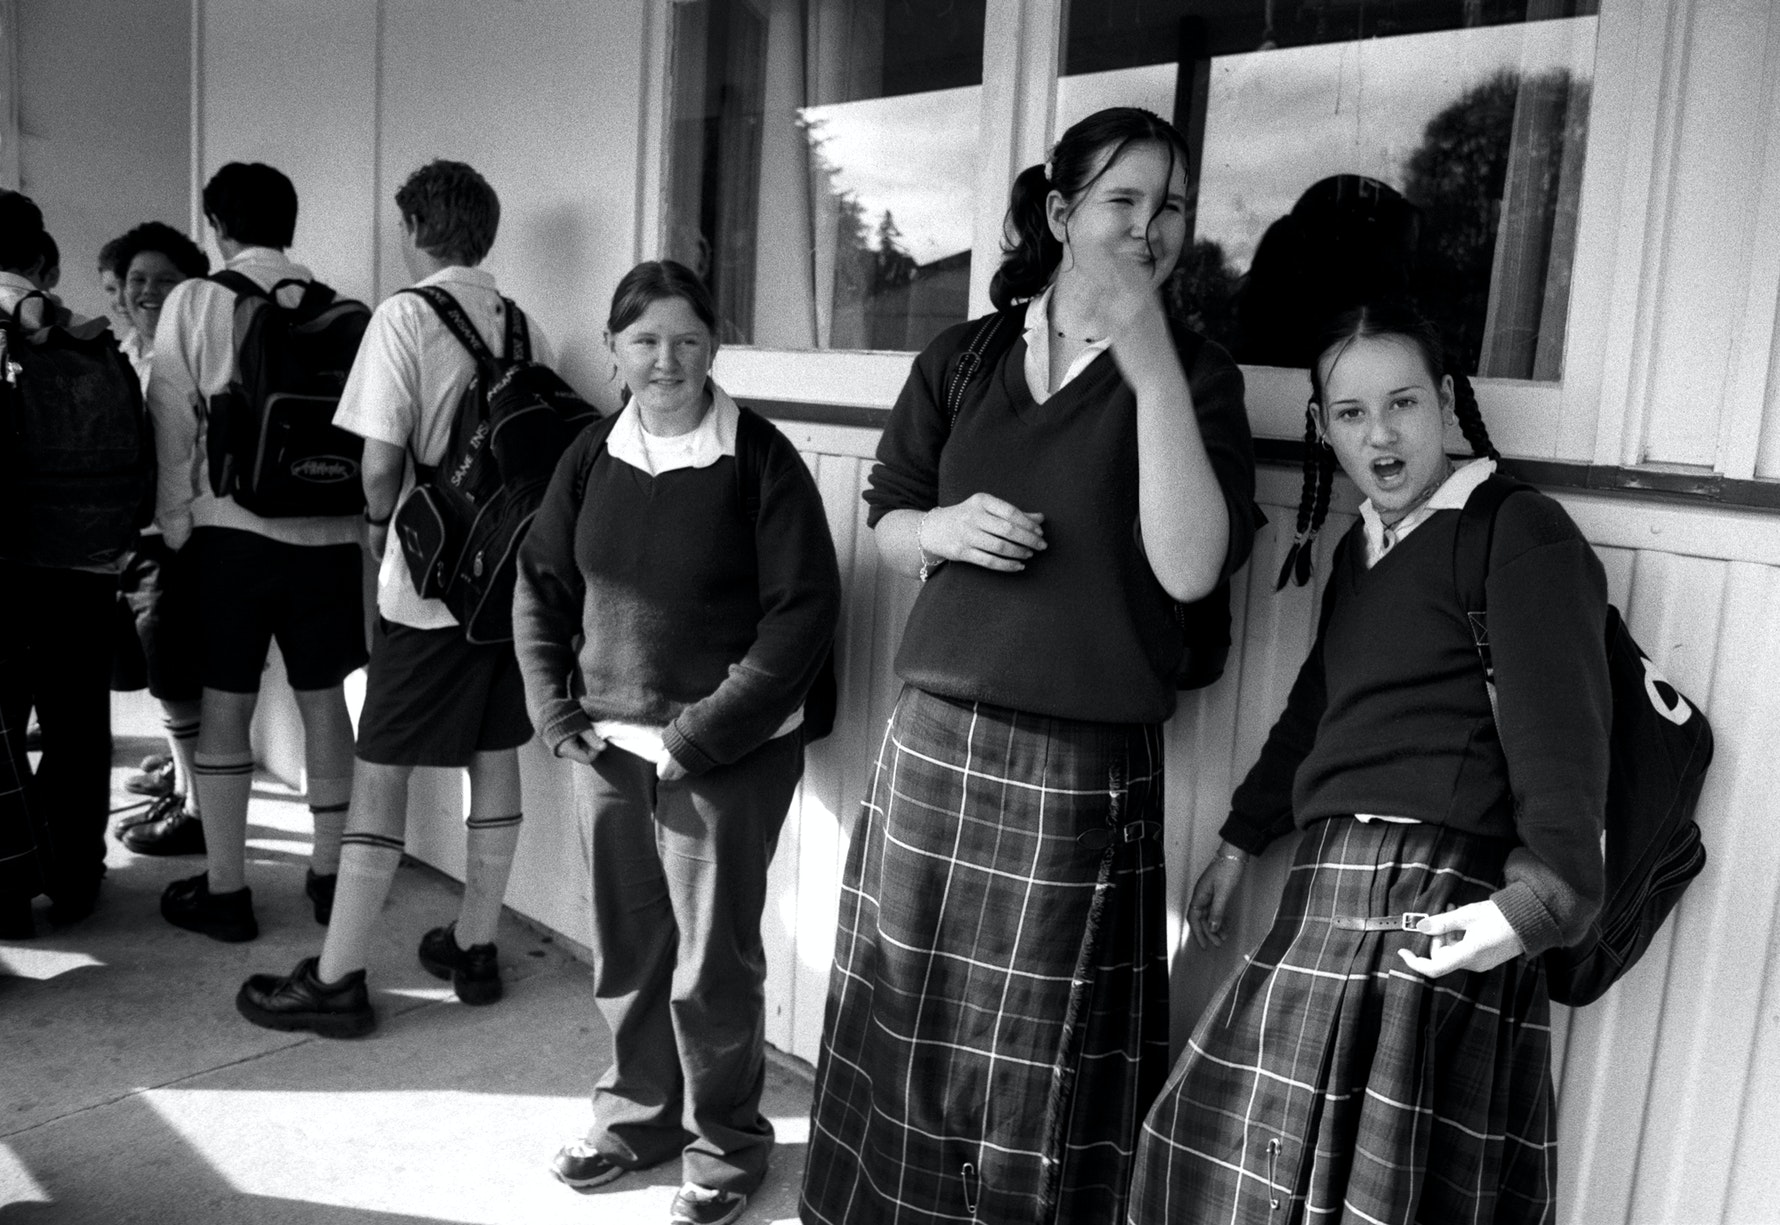 Students waiting for class, Aranui High School